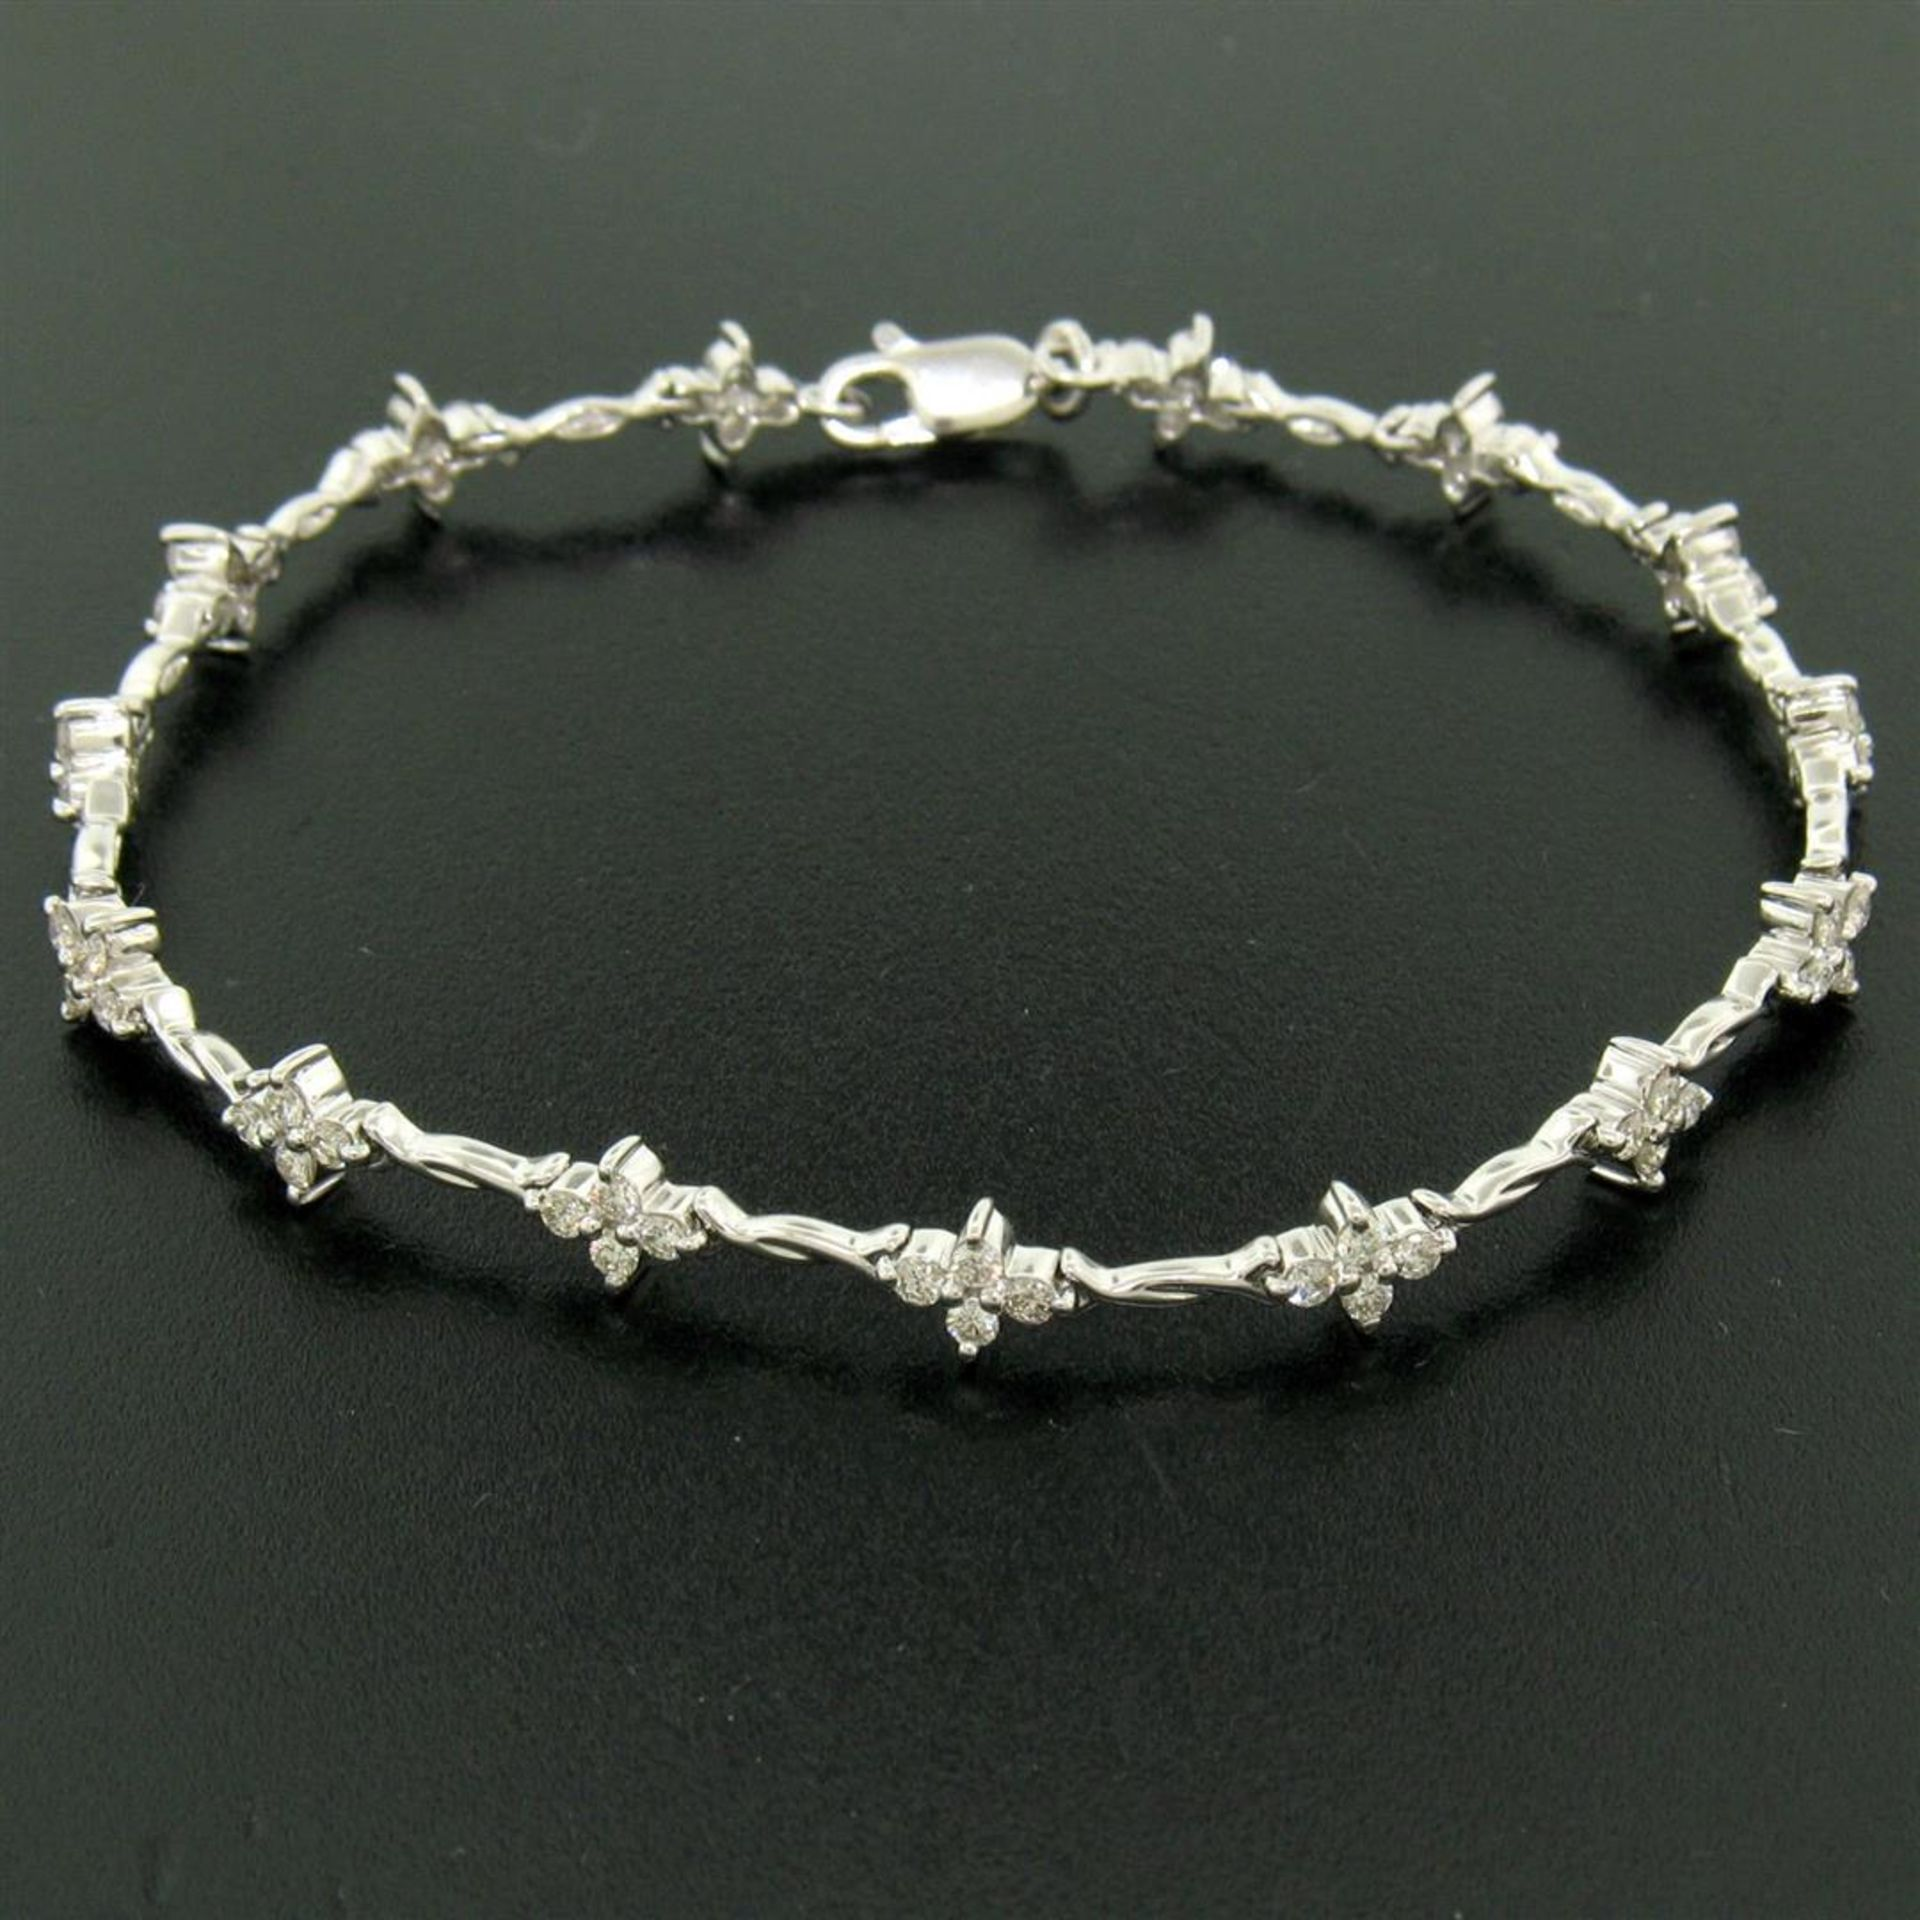 18K White Gold 1.65ctw Diamond Flower Cluster Twisted Wire Link Tennis Bracelet - Image 4 of 6